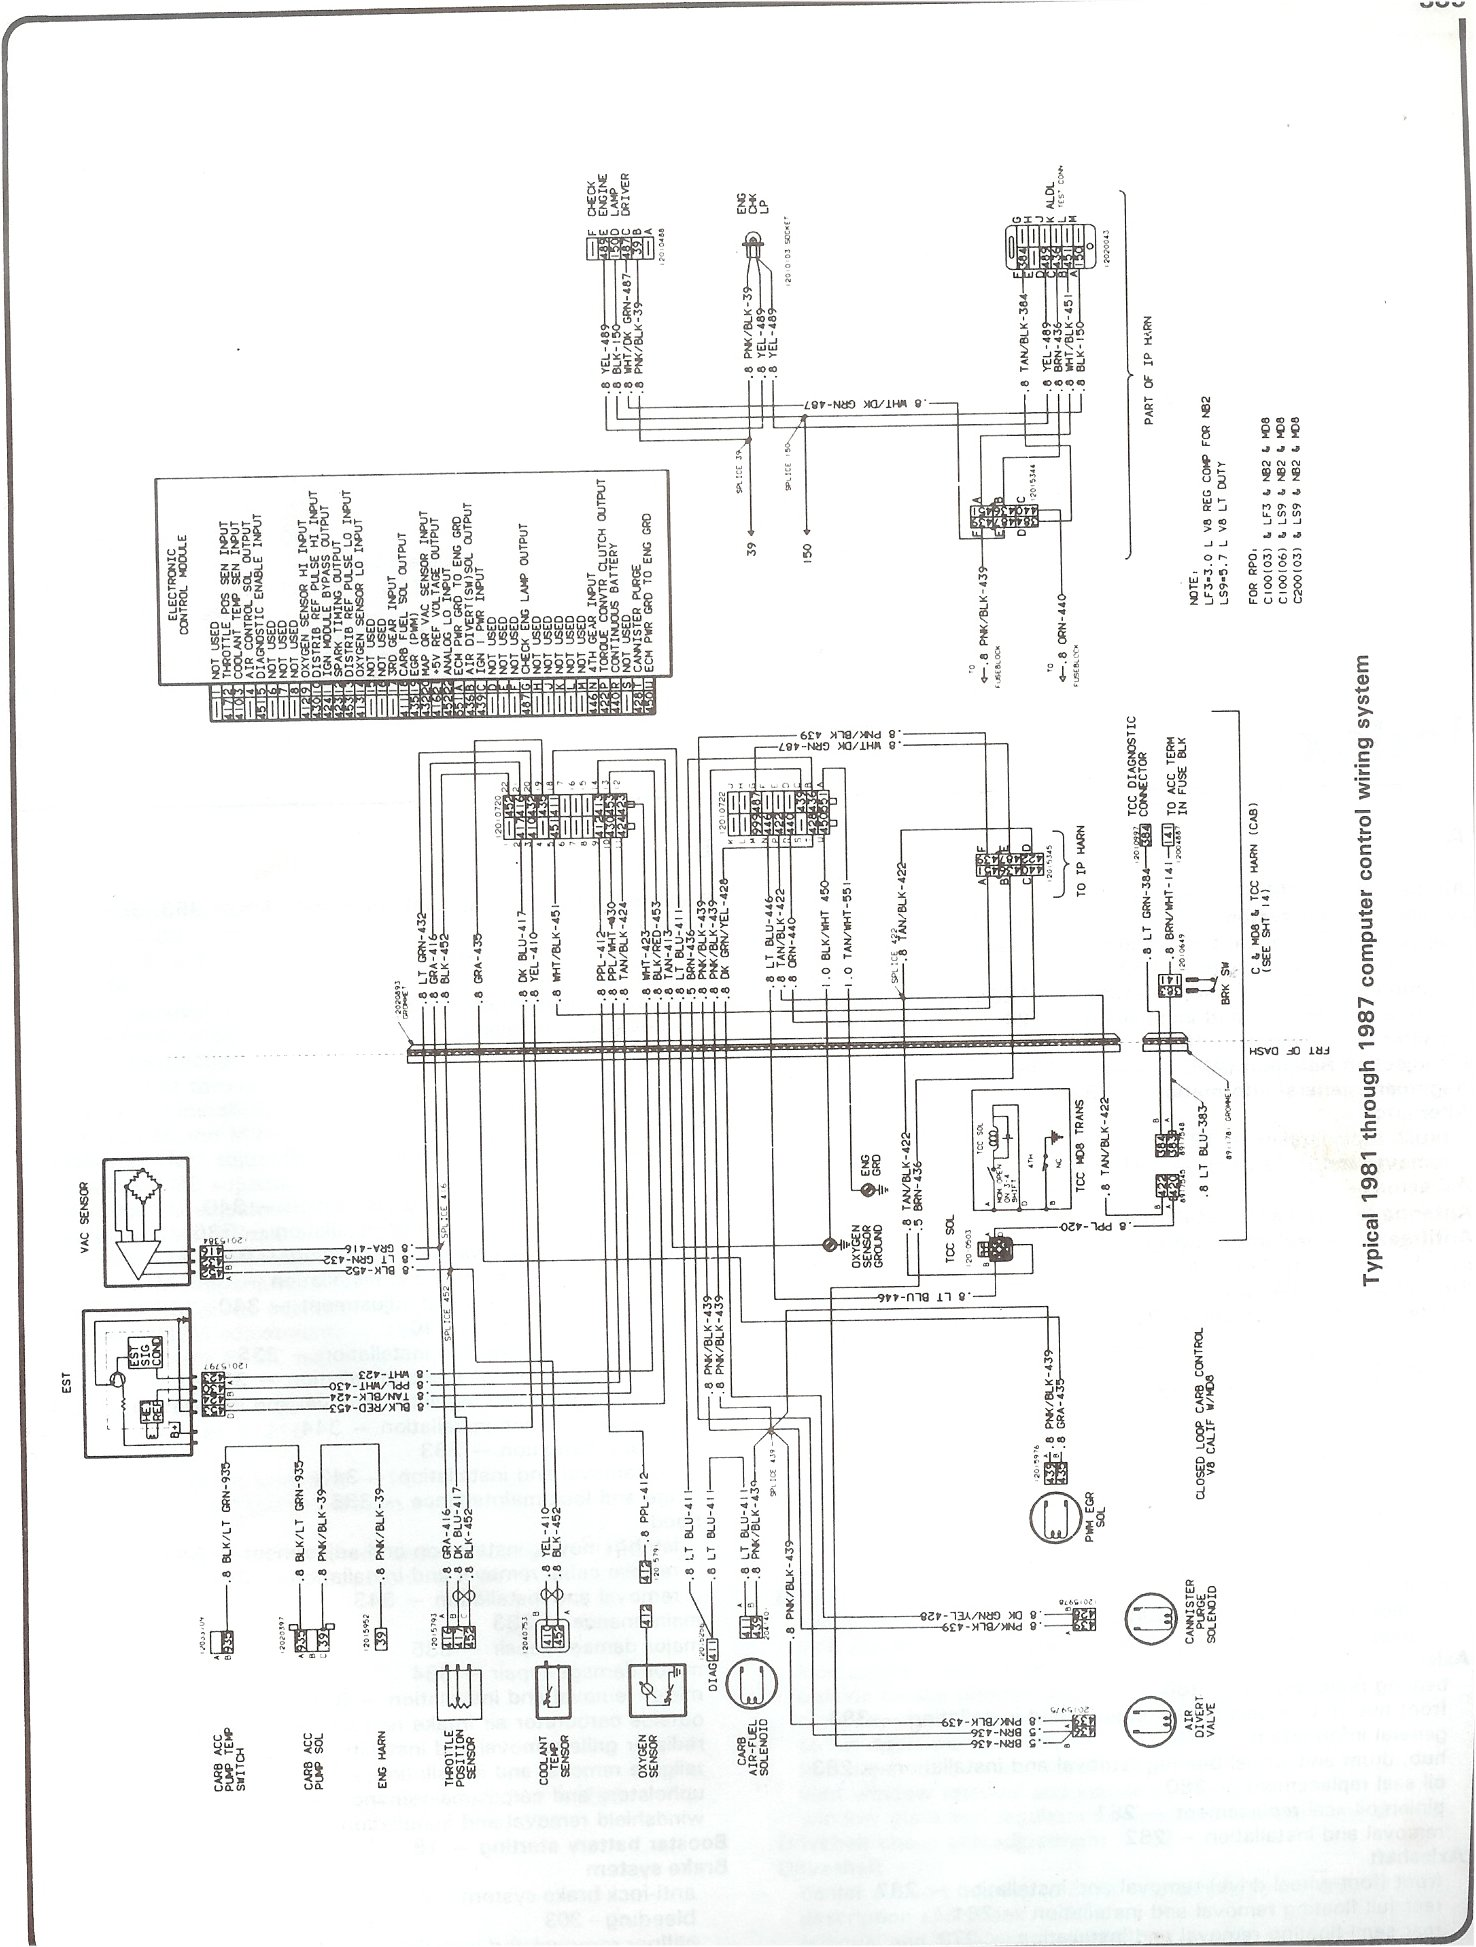 91 chevy wiper wiring diagram